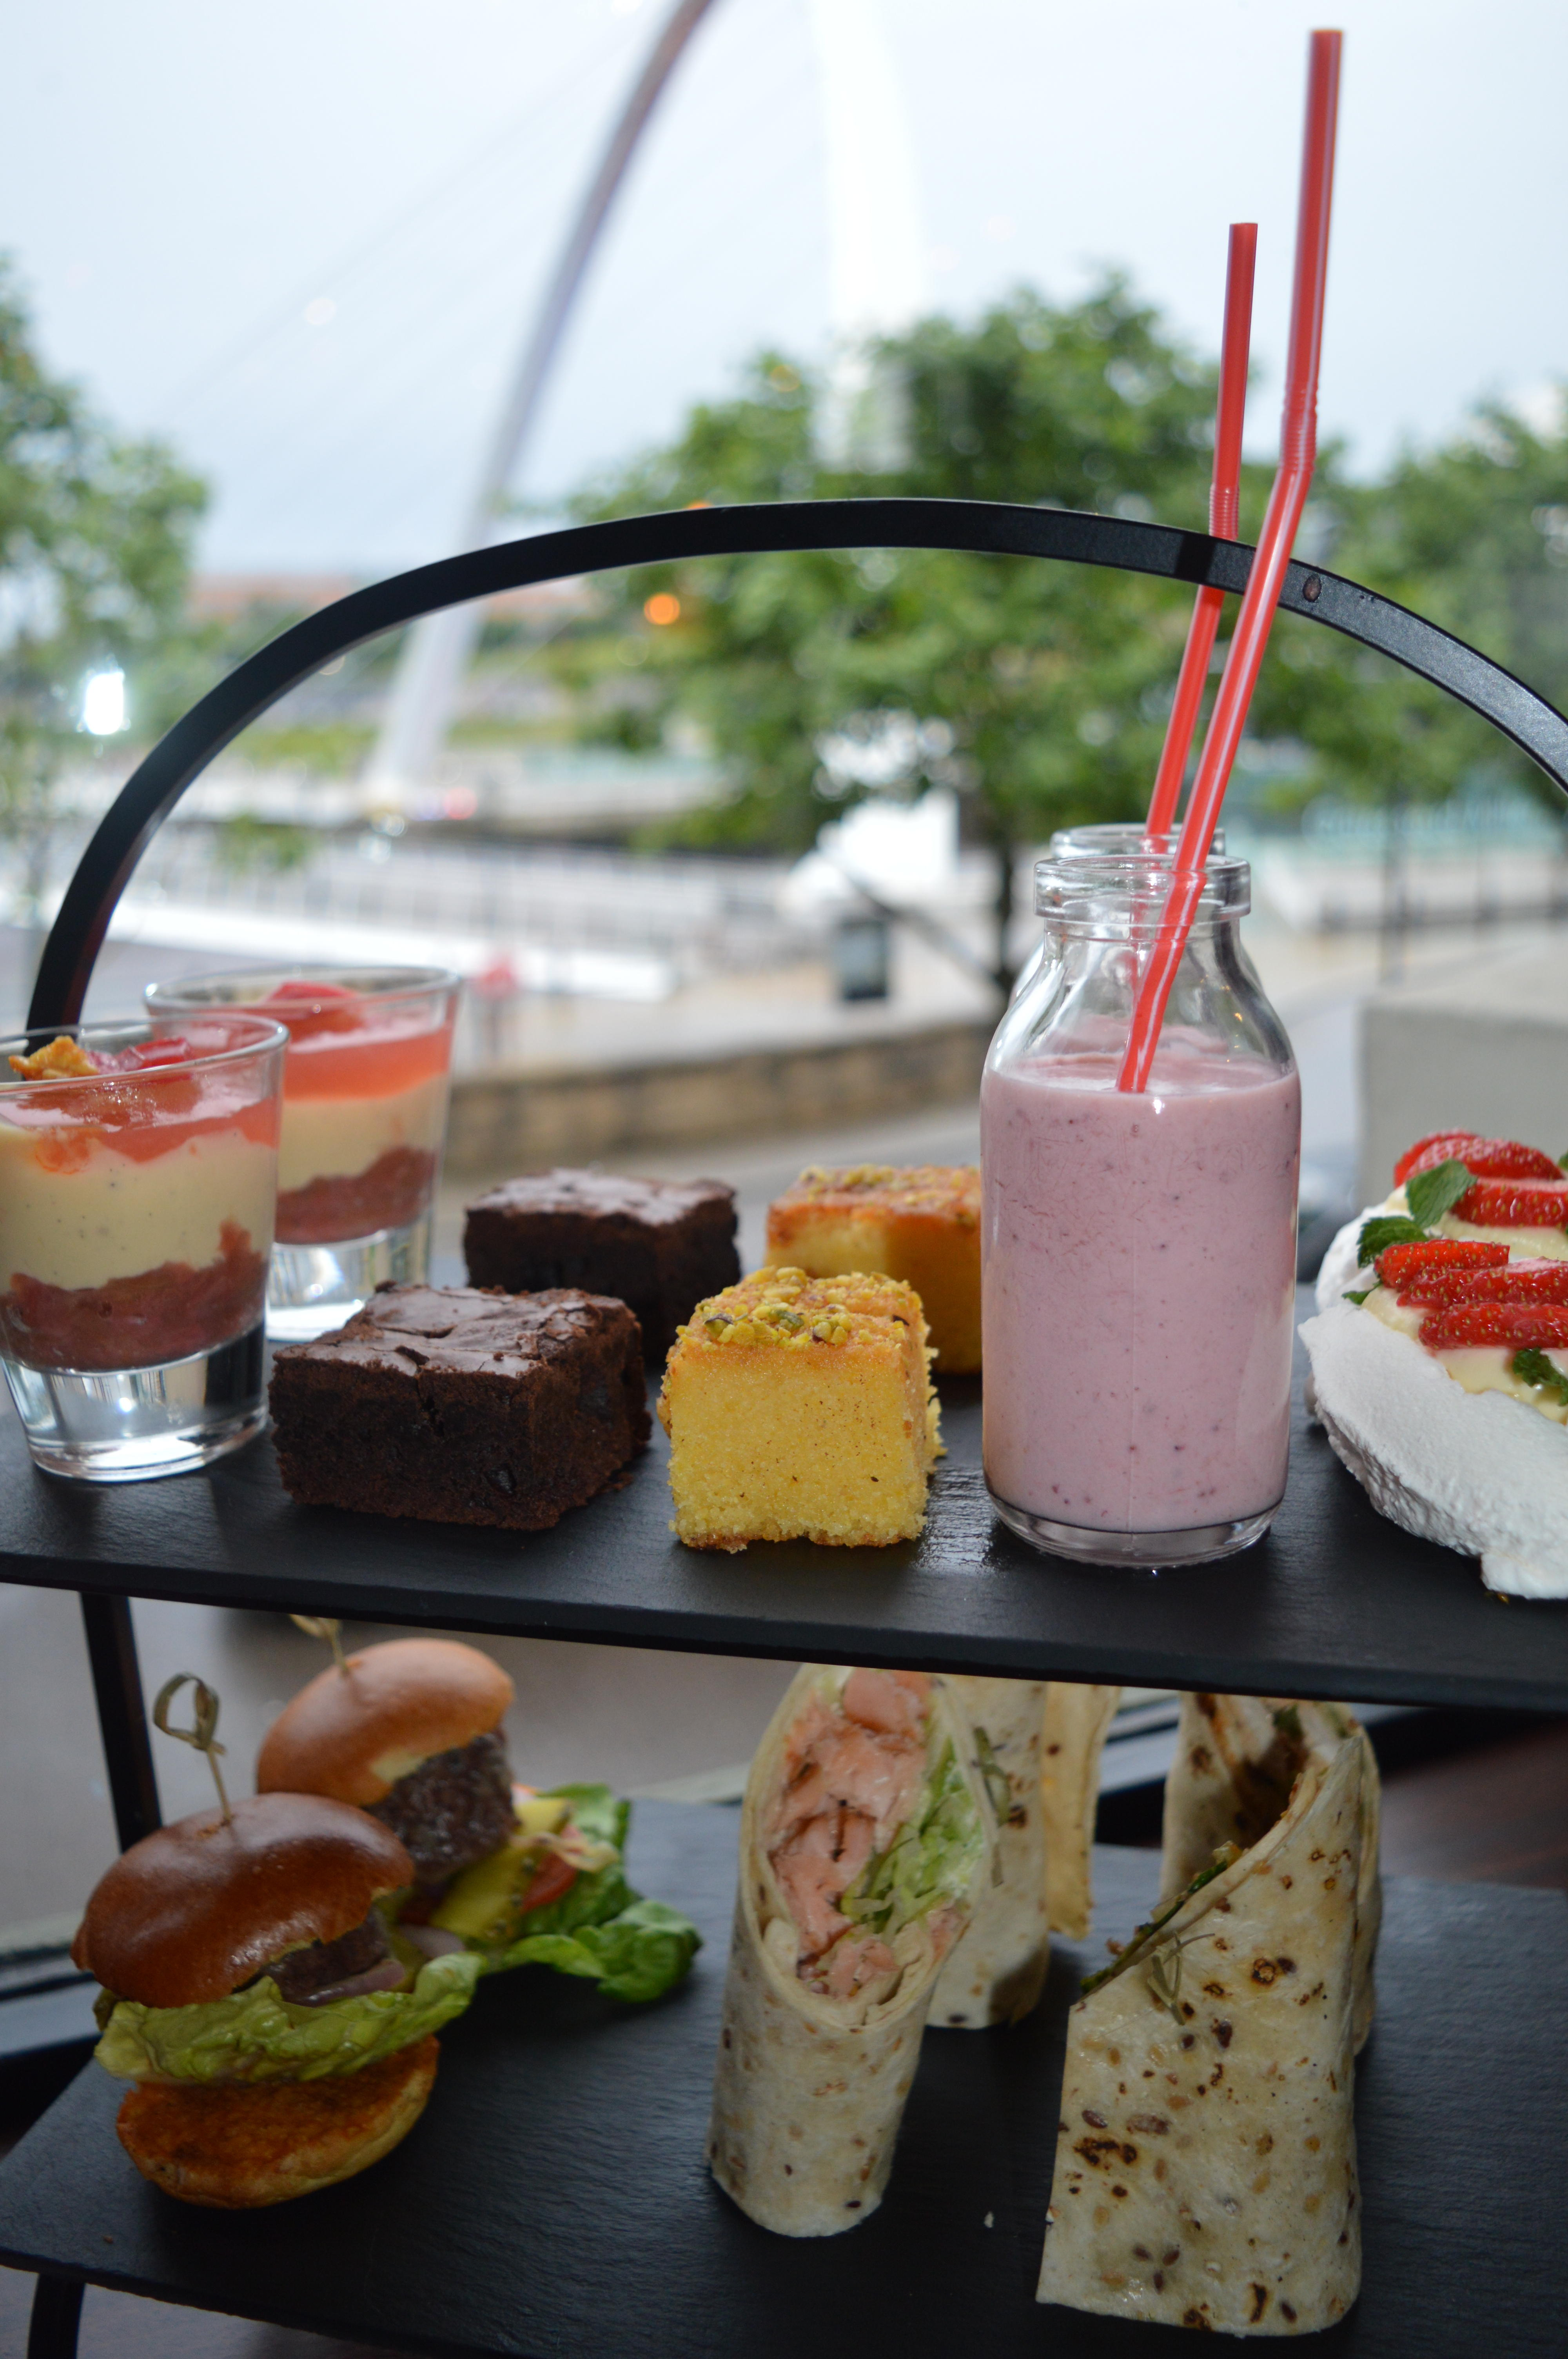 Afternoon Tea at The Malmaison Newcastle Quayside   Where to eat in Newcastle Food Reviews & Guide   Elle Blonde Luxury Lifestyle Destination Blog